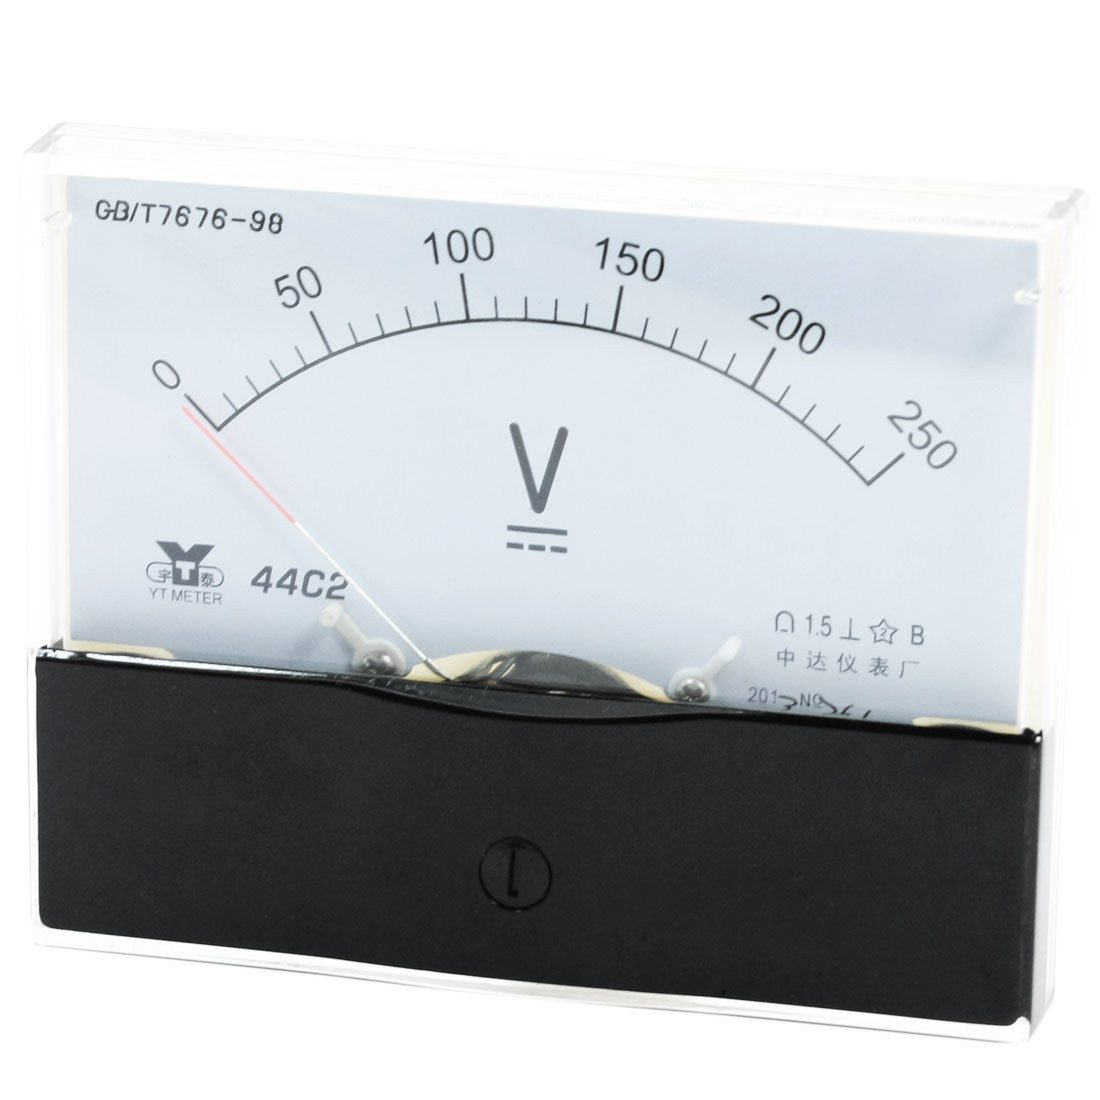 Rectangle Measurement Tool Analog Panel Voltmeter Volt Meter DC 0 - 250V Measuring Range 44C2